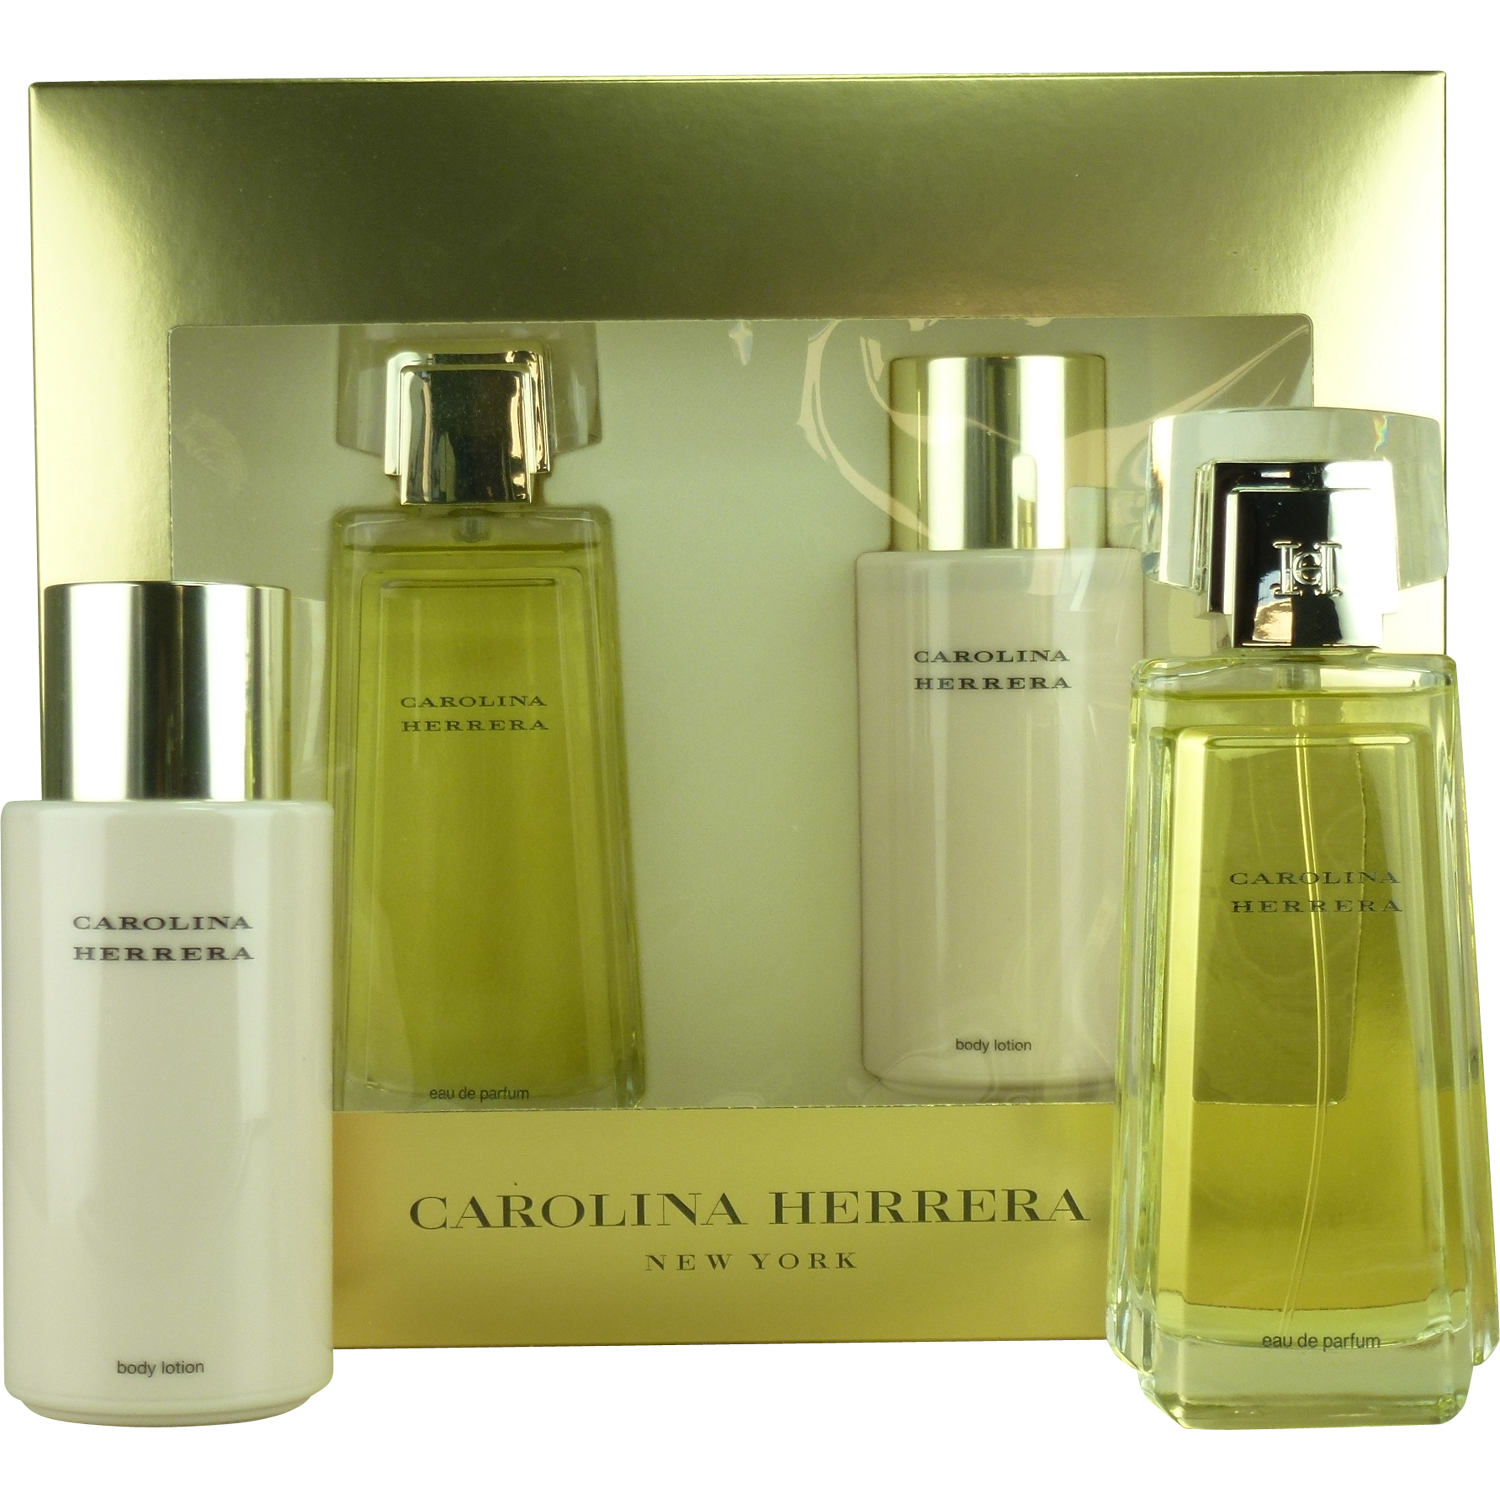 CAROLINA HERRERA 2 PCS SET FOR WOMEN: 3.4 SP